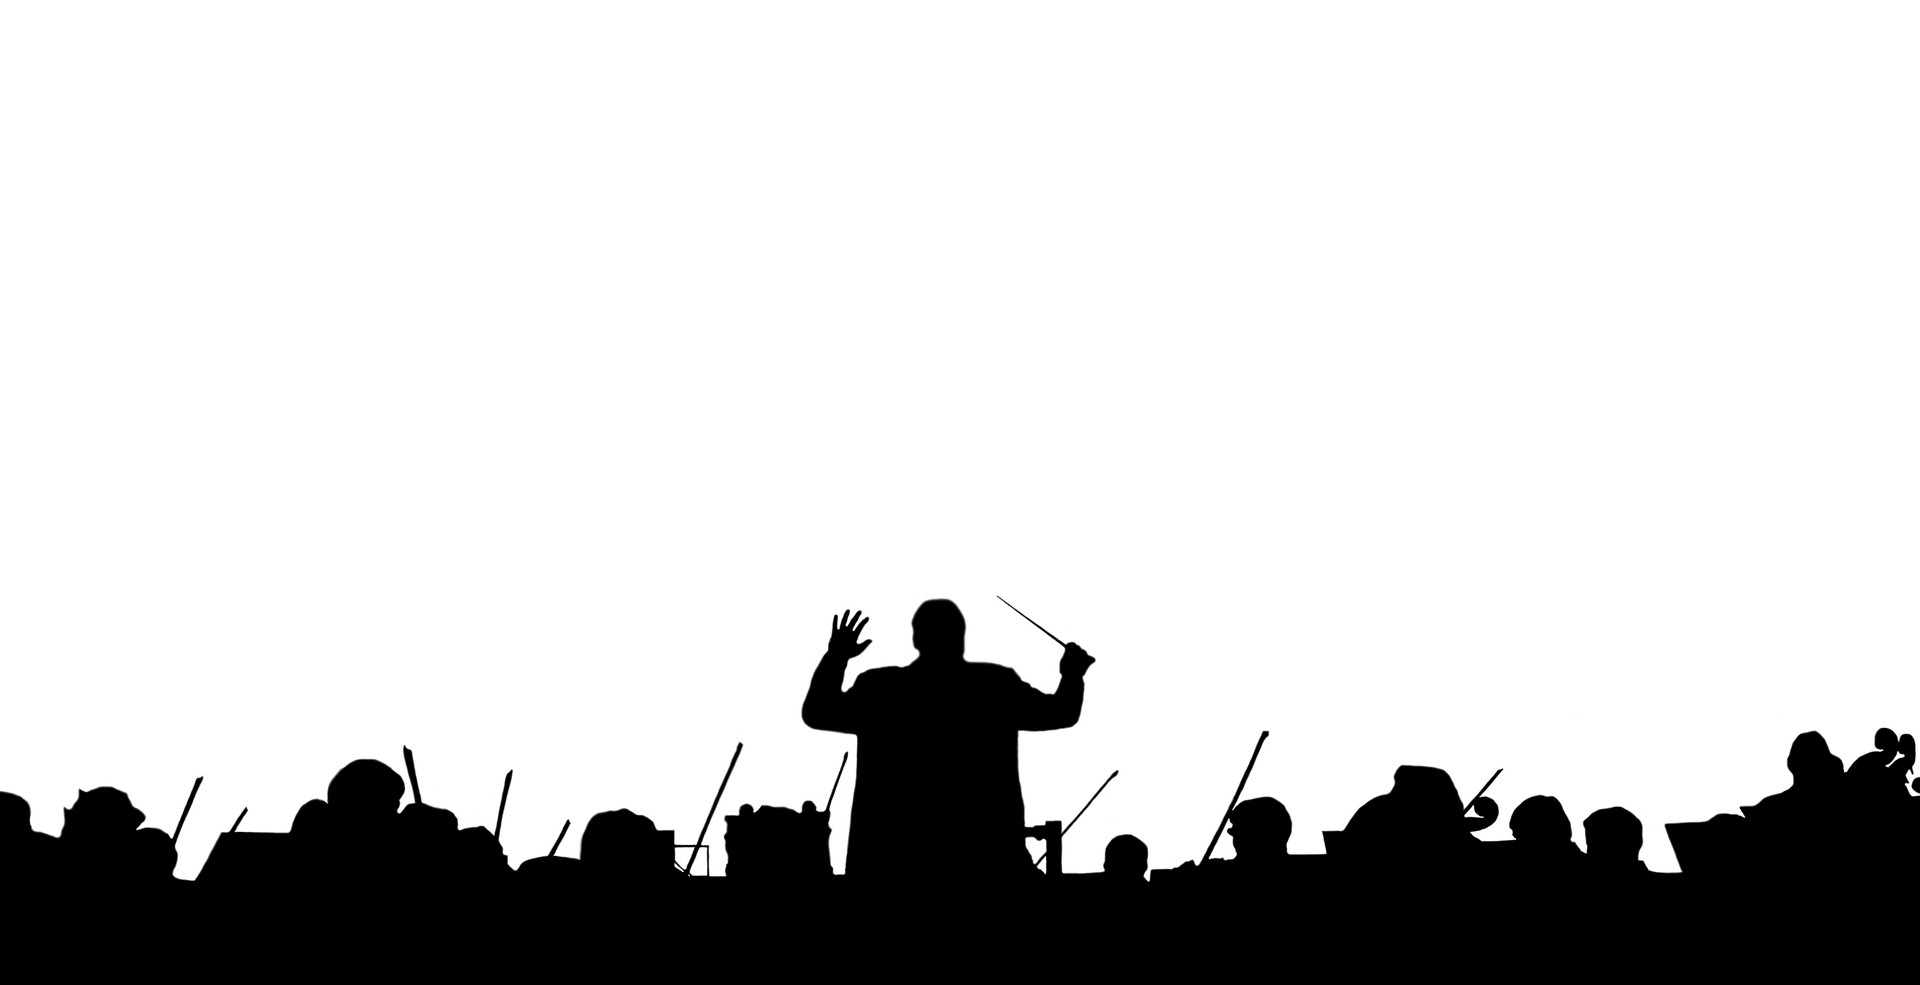 Symphony Orchestra in the form of a silh